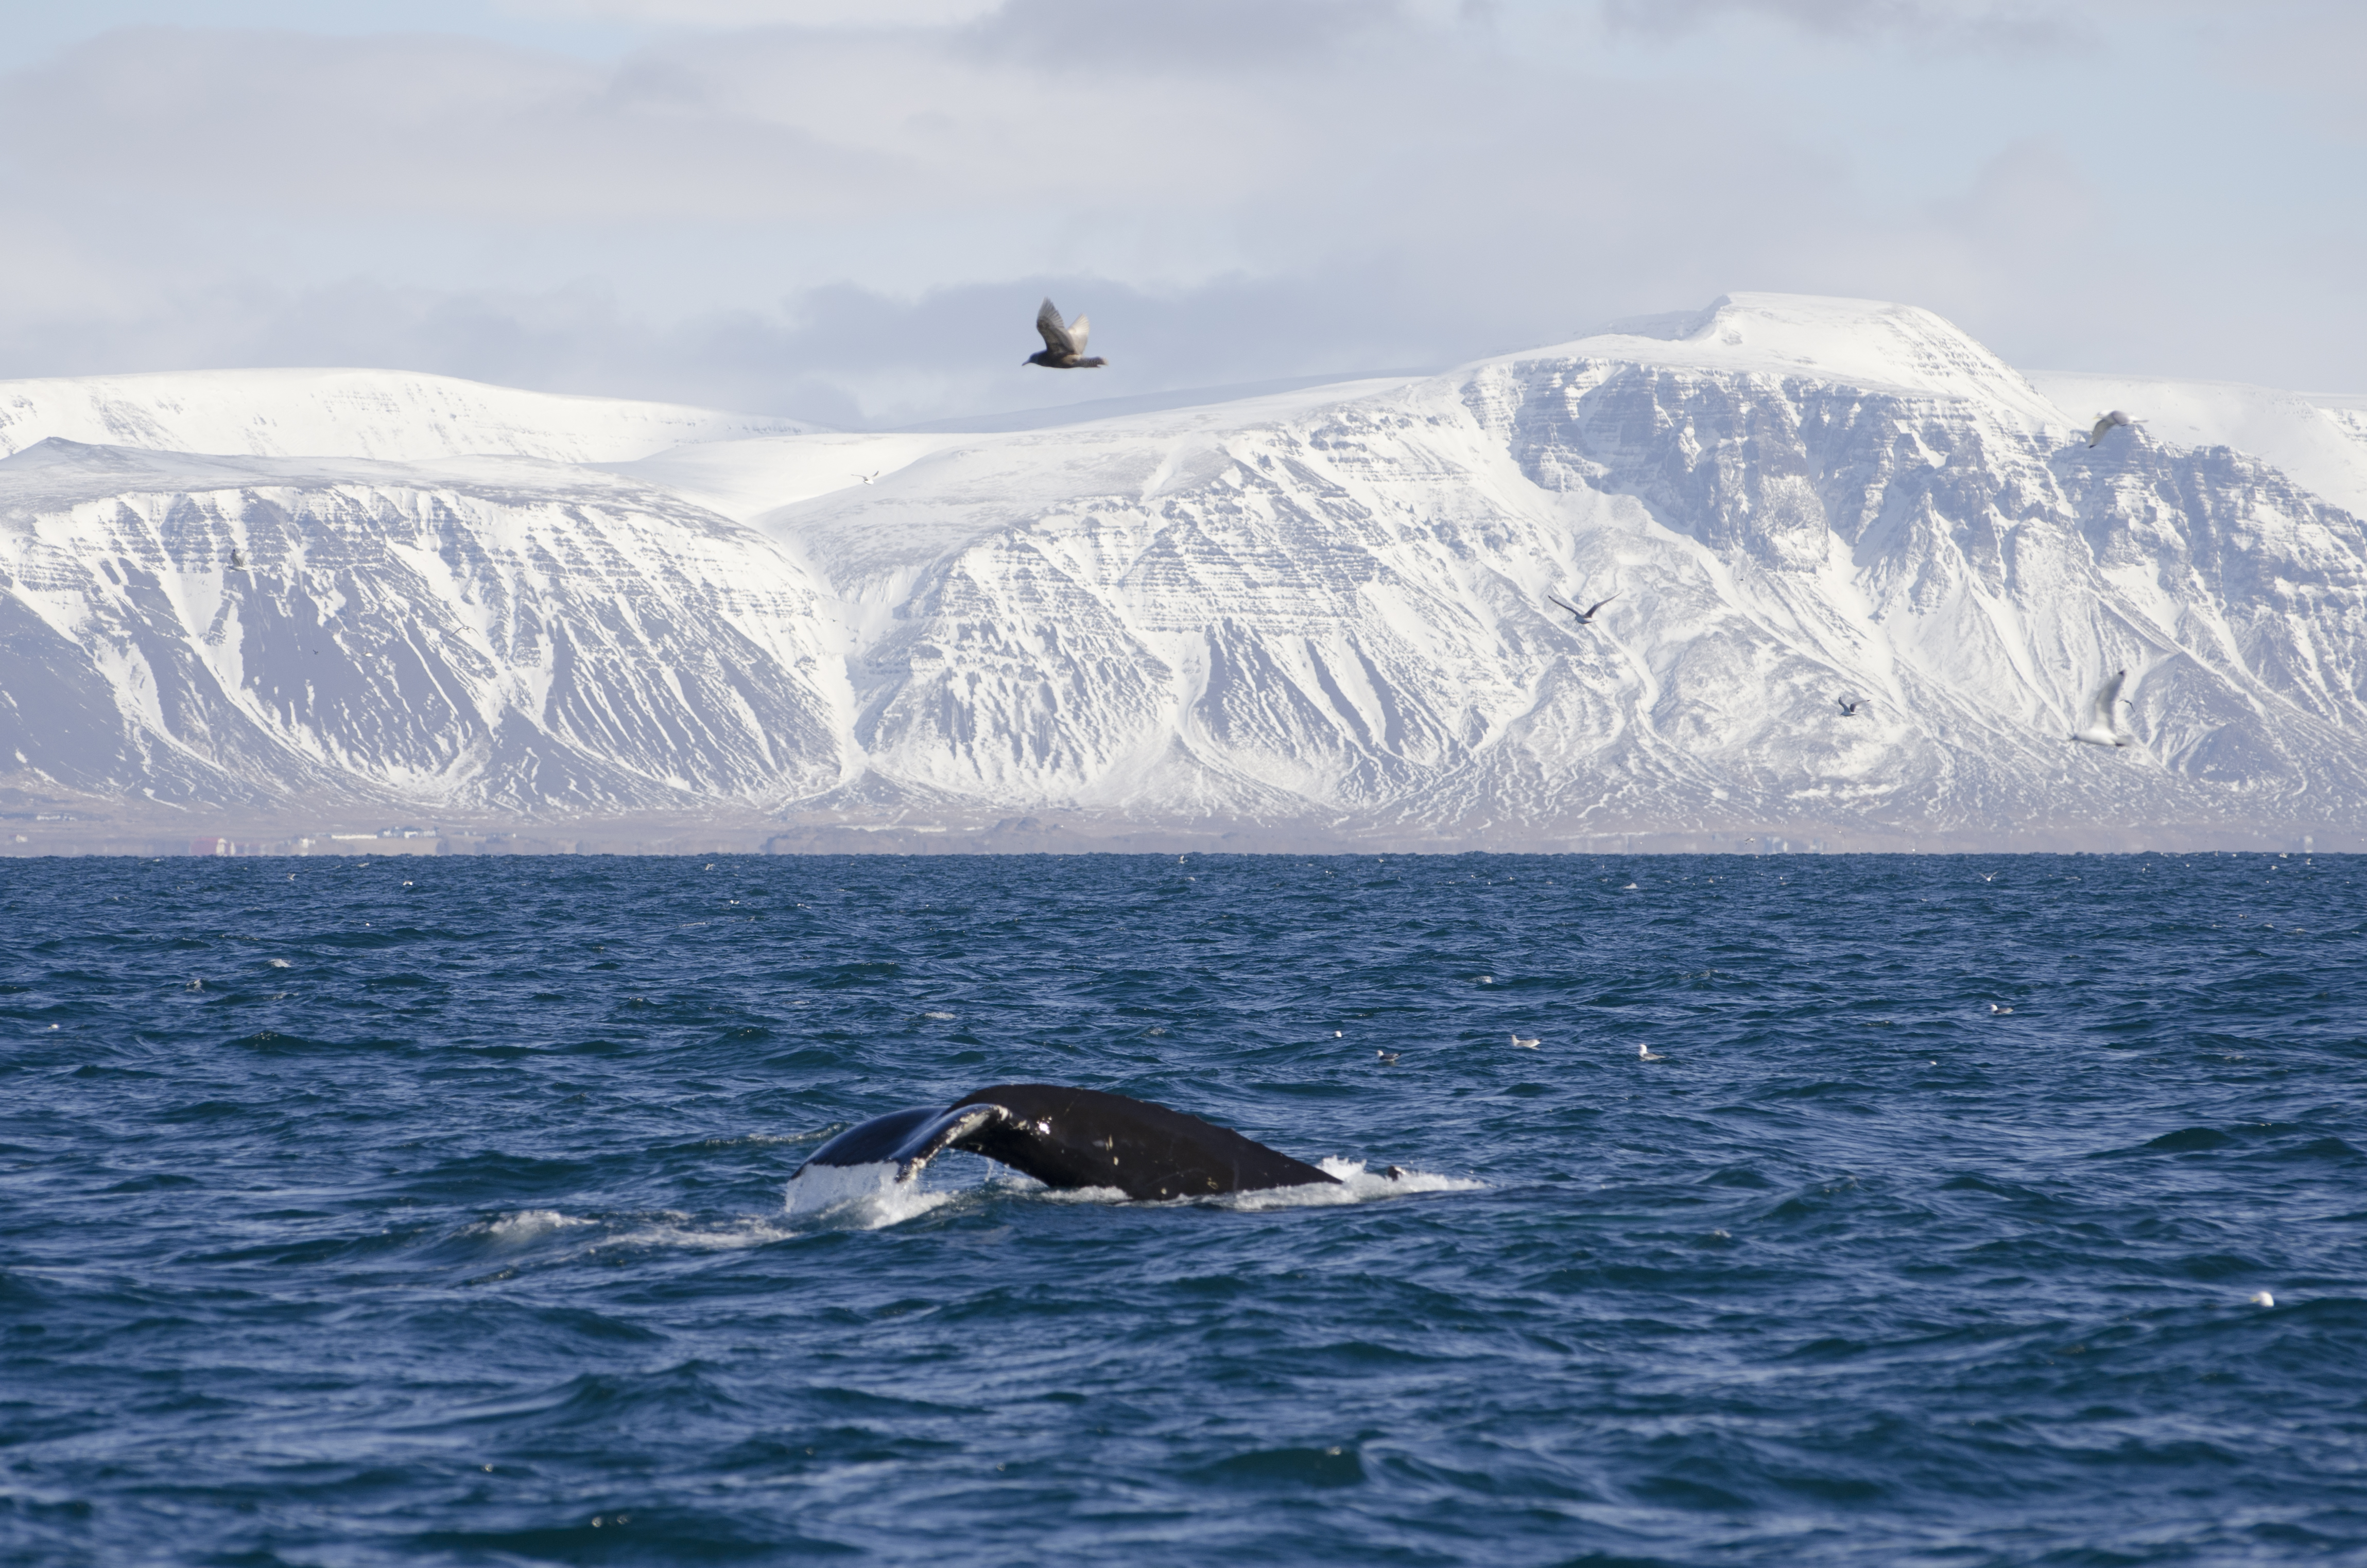 A Humpback Whale diving before the snow-coated mountains of Iceland's west in winter.